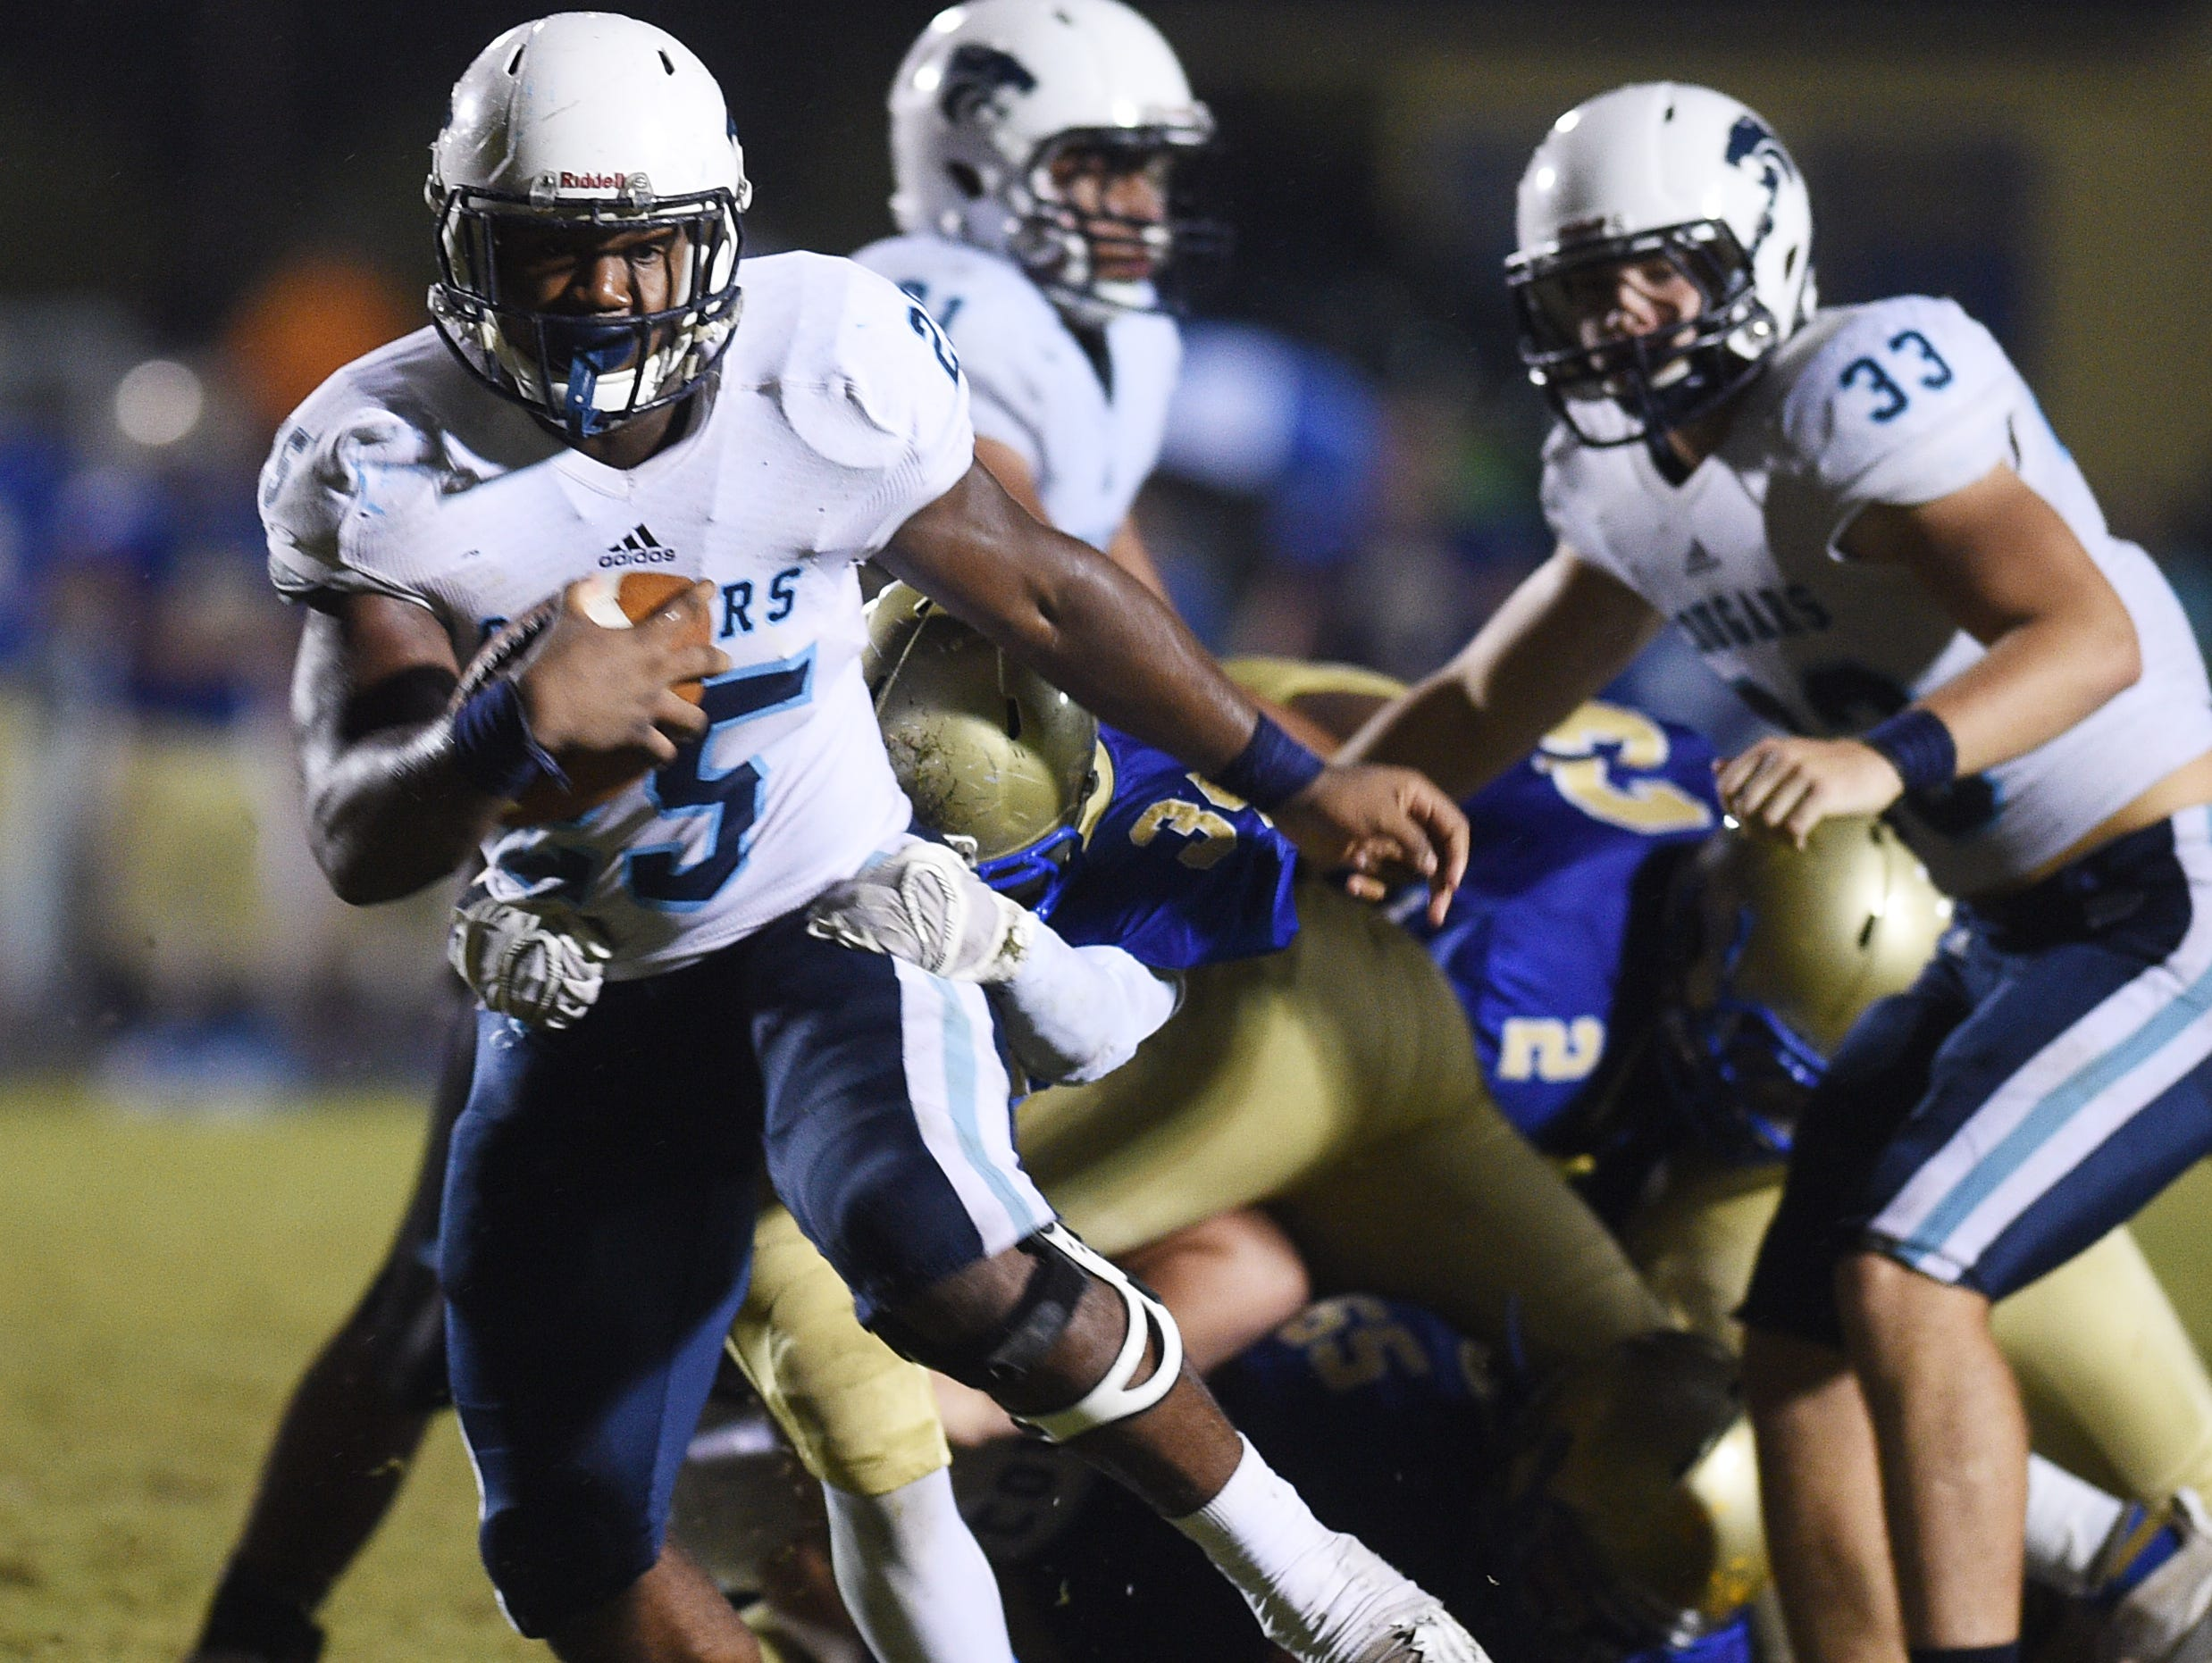 Centennial running back Tyrel Dodson (25) has ran for 428 yards and 10 touchdowns this season.